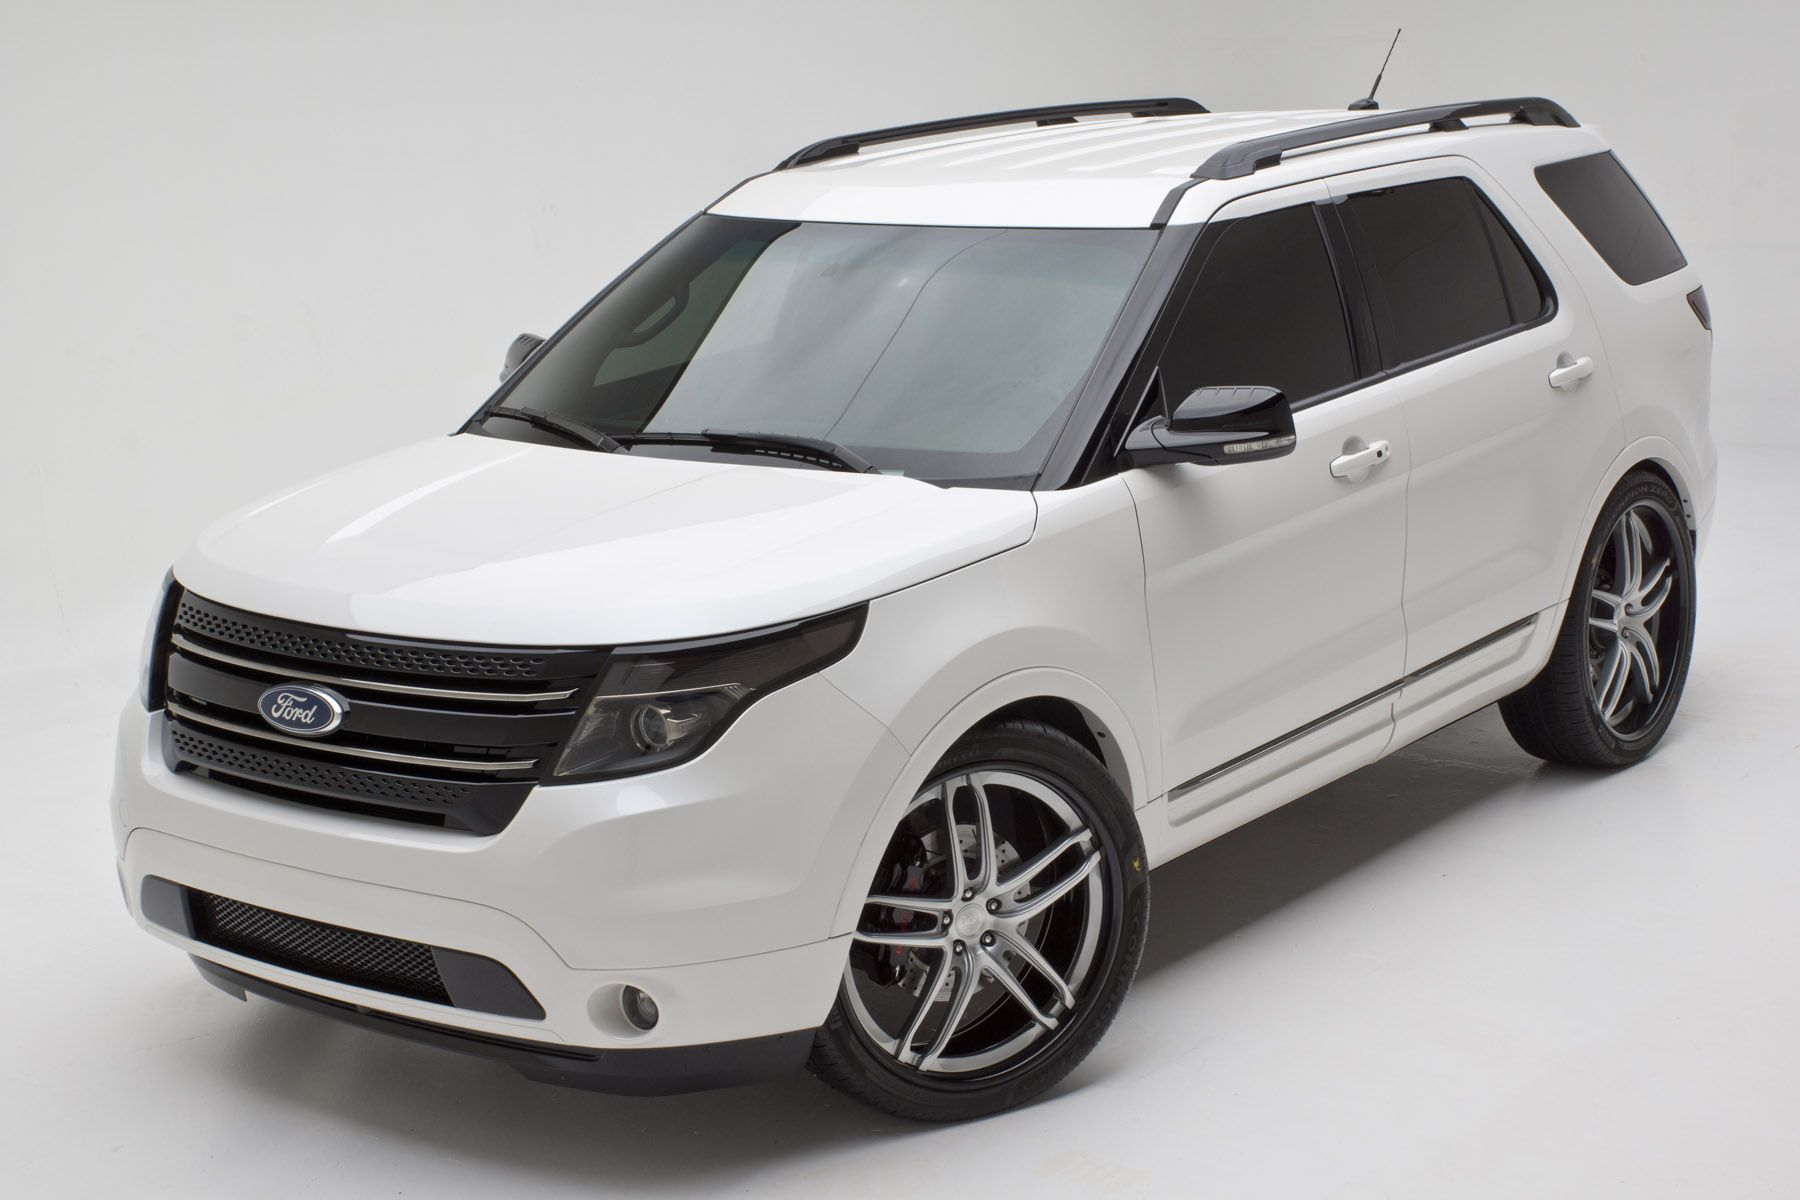 2012 ford explorer limited by dso eyewear exterior basf photos